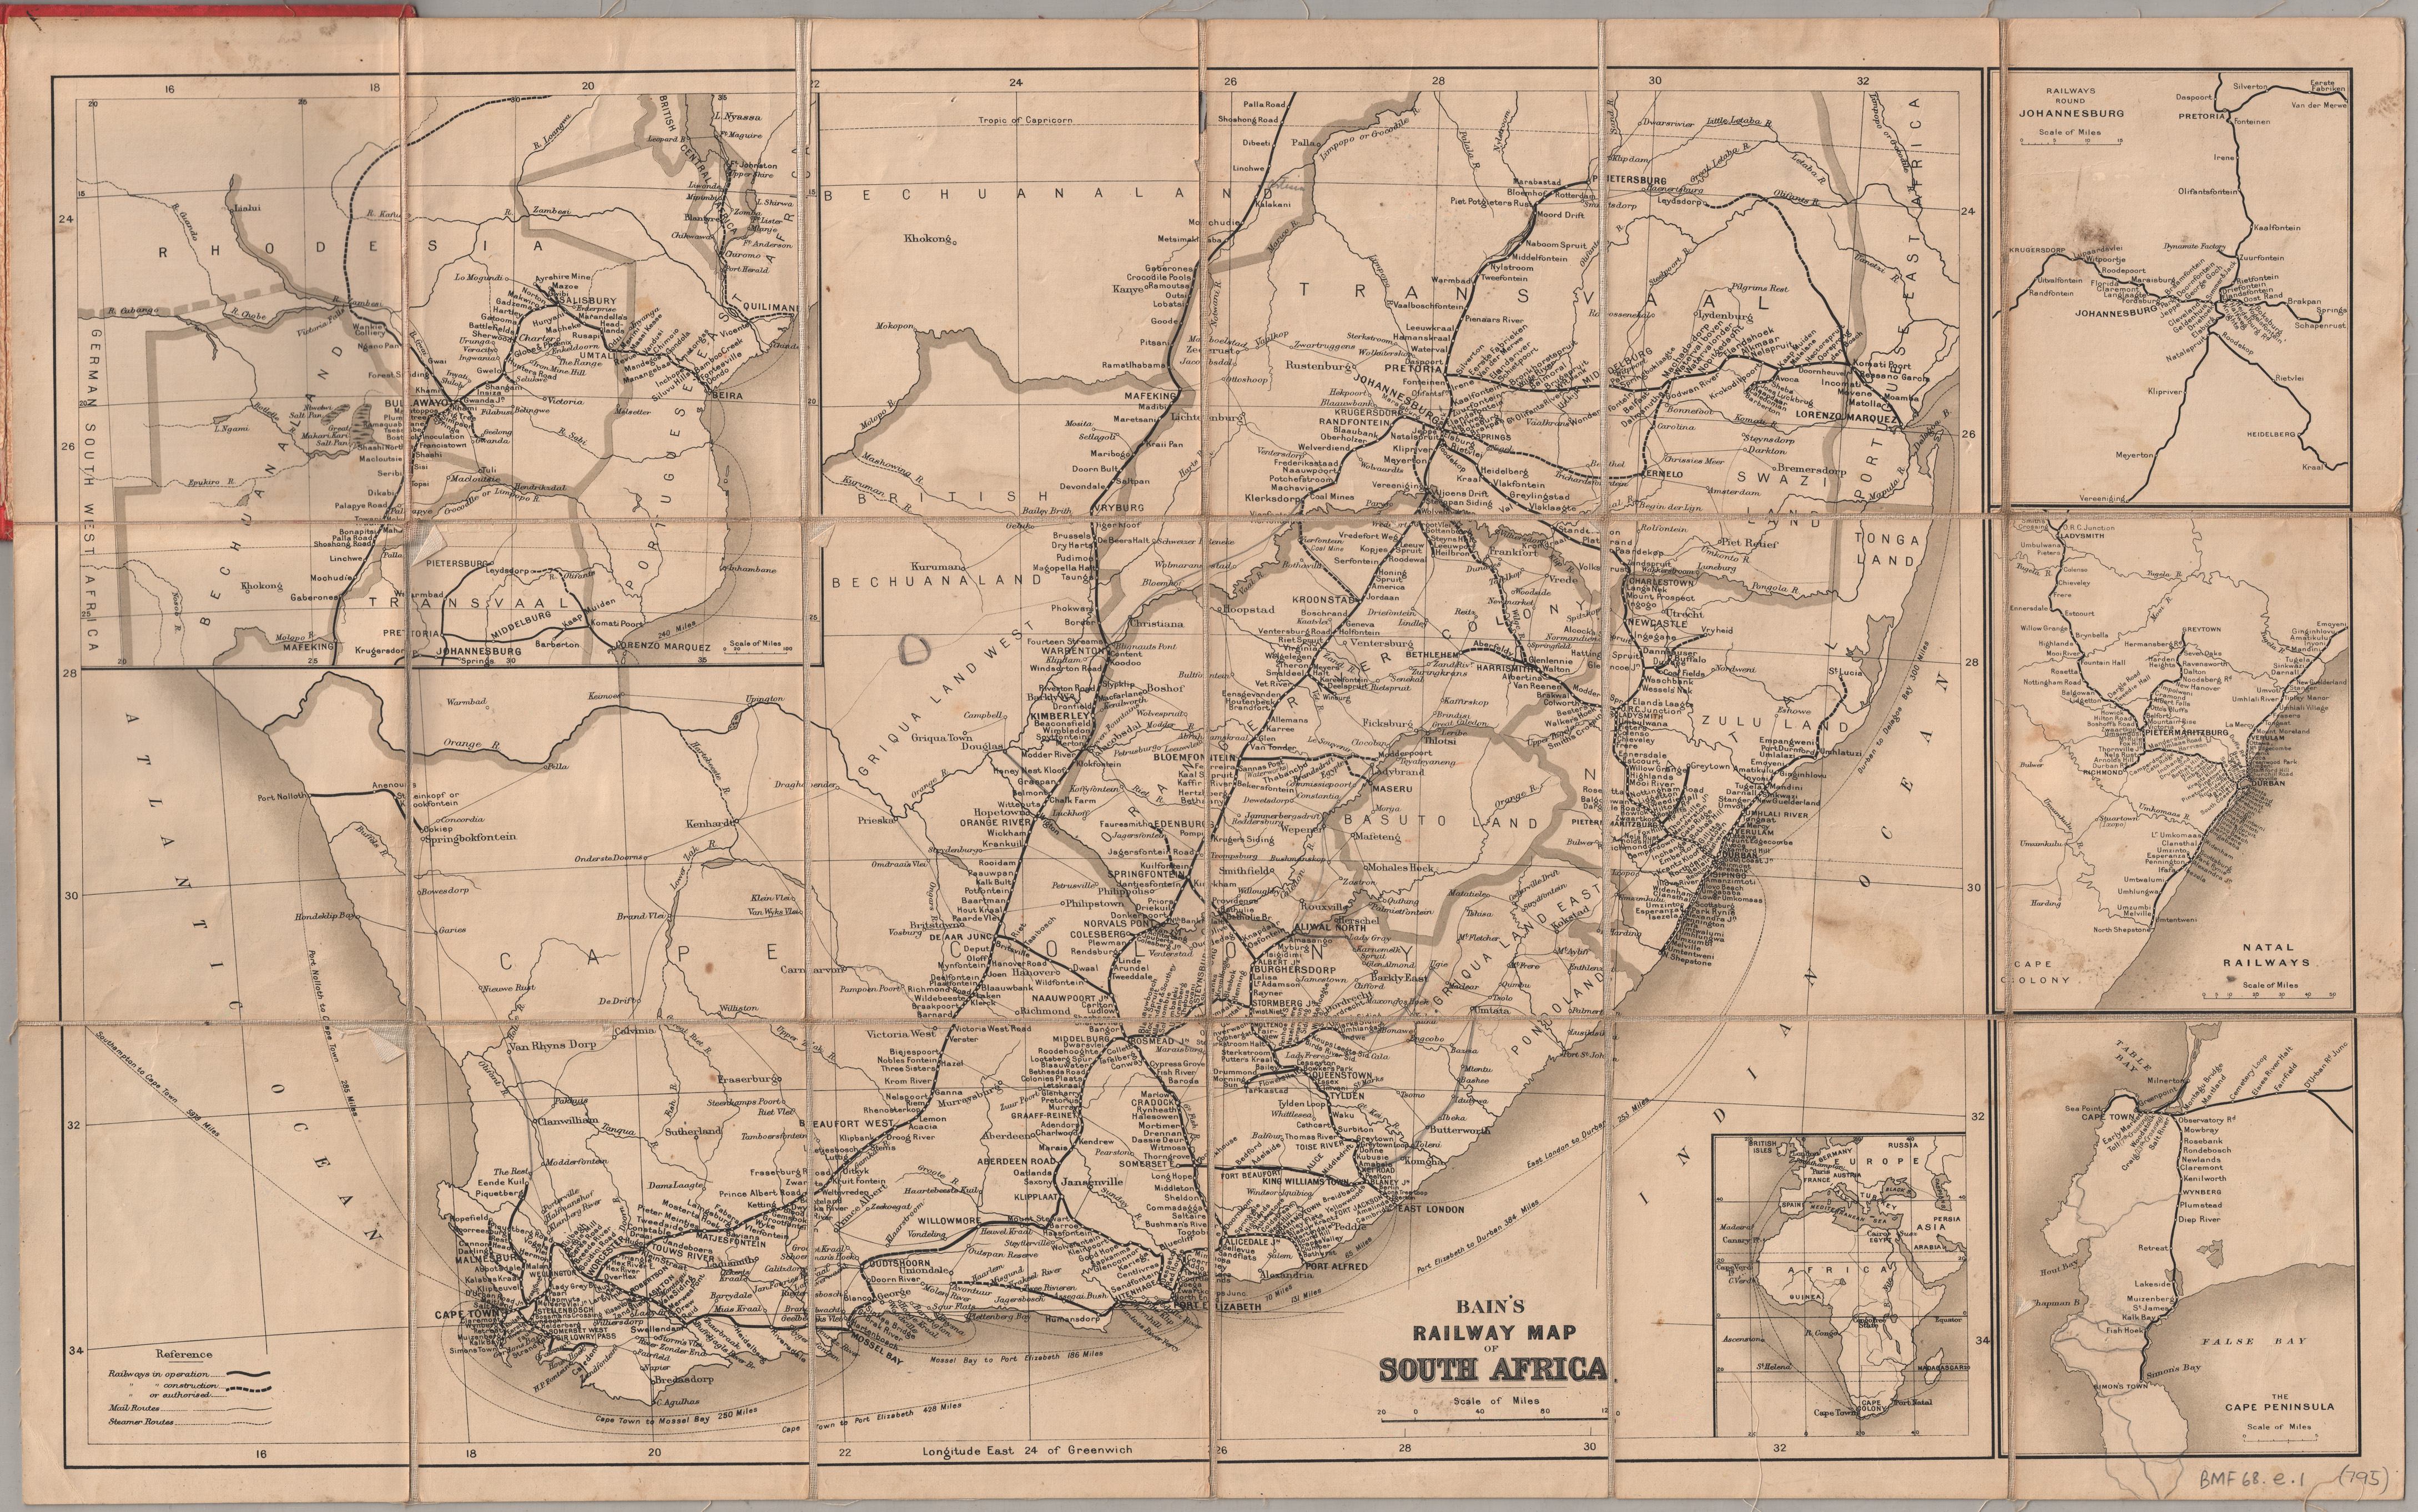 Bains railway map of South Africa UCT Libraries Digital Collections